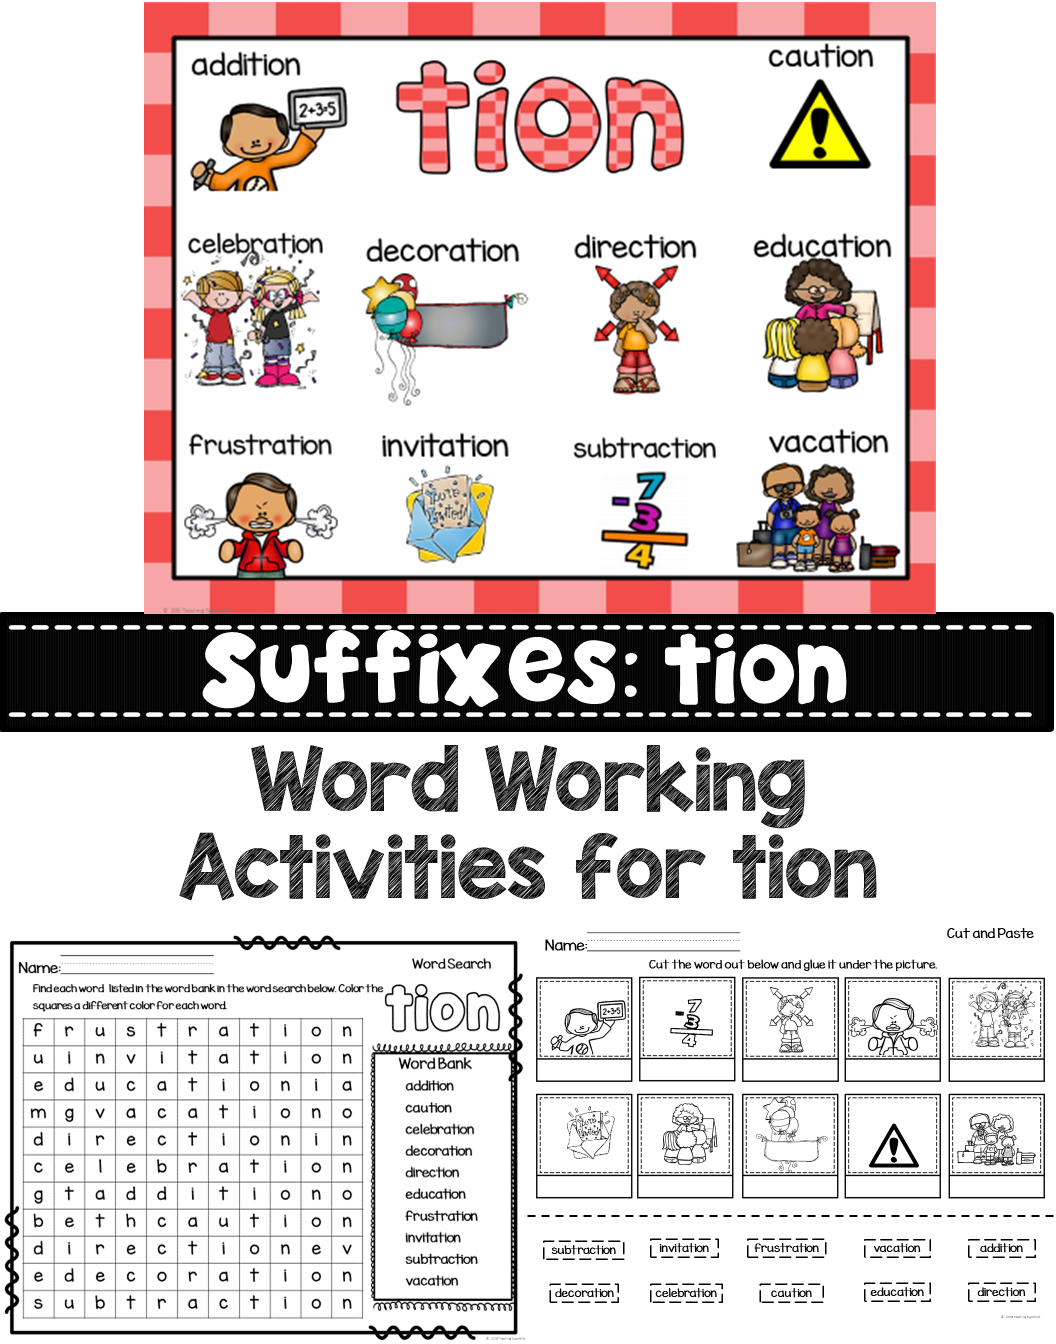 Suffixes Tion Sion And Cian